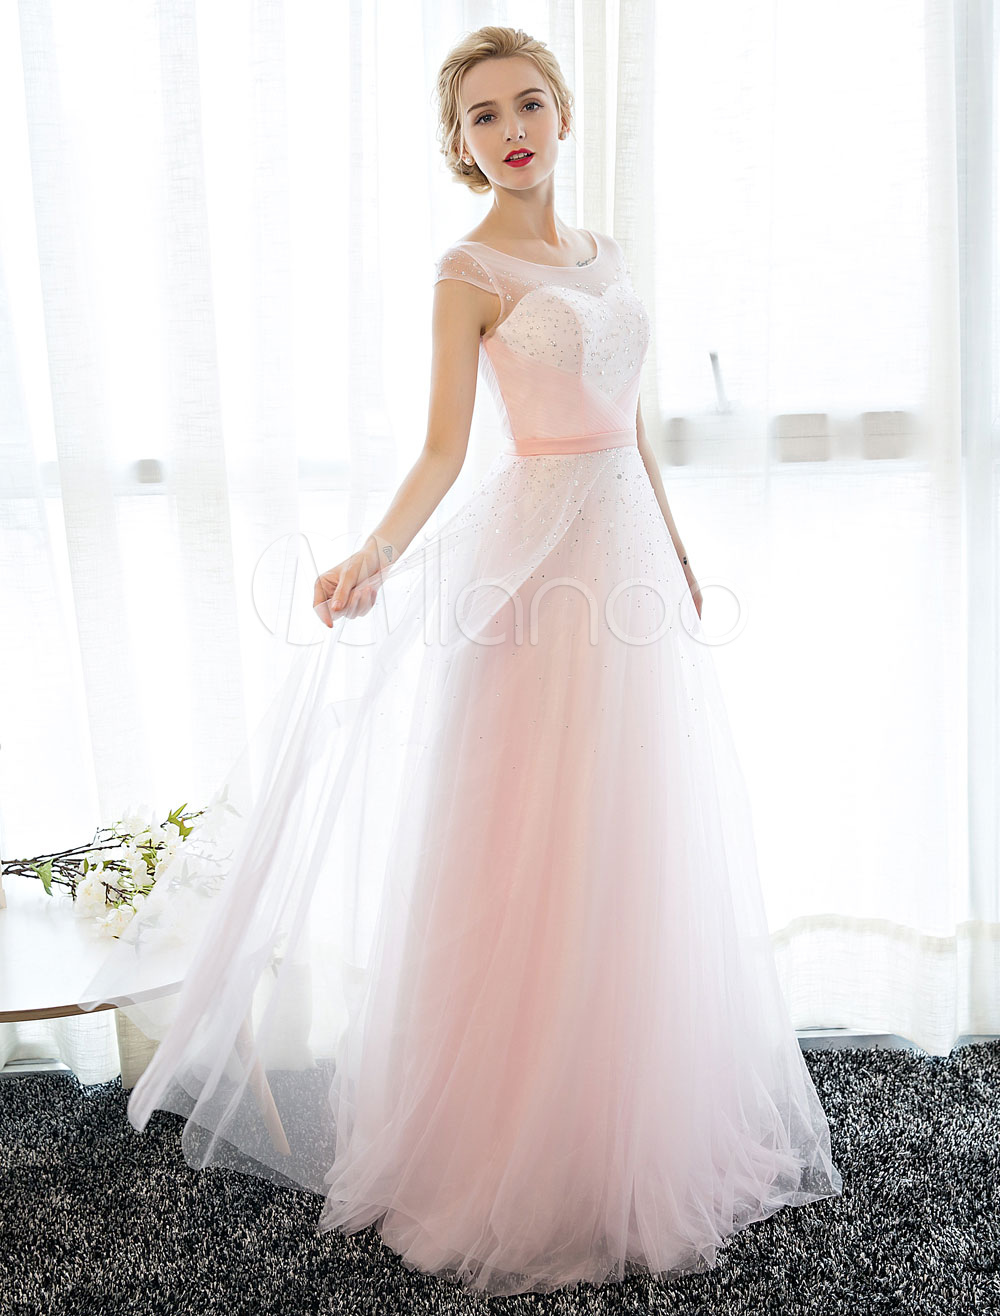 Buy Prom Dress Long Soft Pink Tulle Party Dress Beaded Illusion Sweetheart Neckline Floor Length Prom Dresses for $118.79 in Milanoo store